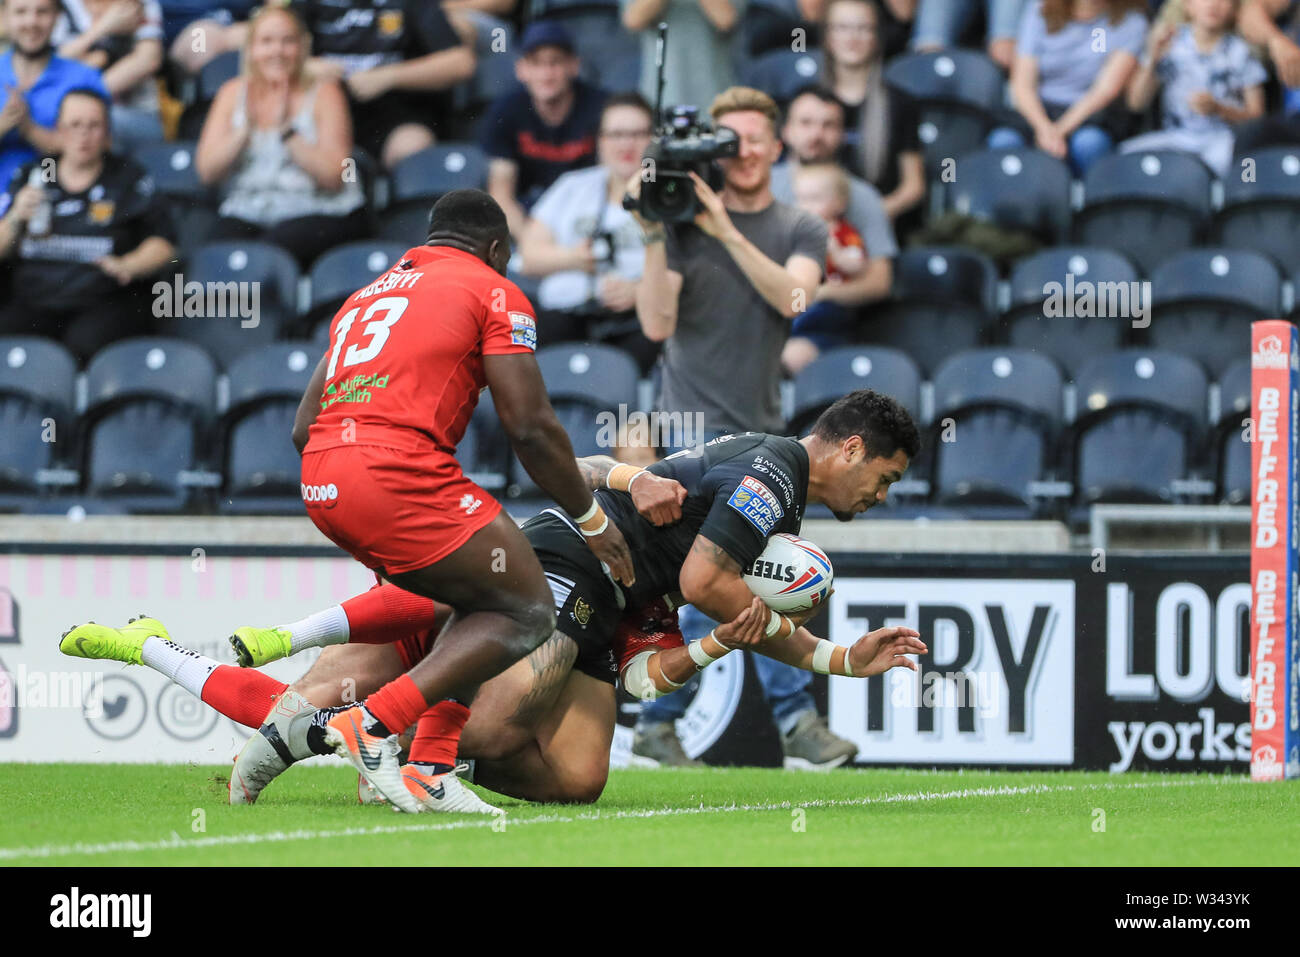 11th July 2019 , KCOM Stadium, Hull, England; Betfred Super League, Round 22, Hull FC vs London Broncos ; Bureta Faraimo (2) of Hull FC goes over for a try   Credit: Mark Cosgrove/News Images - Stock Image